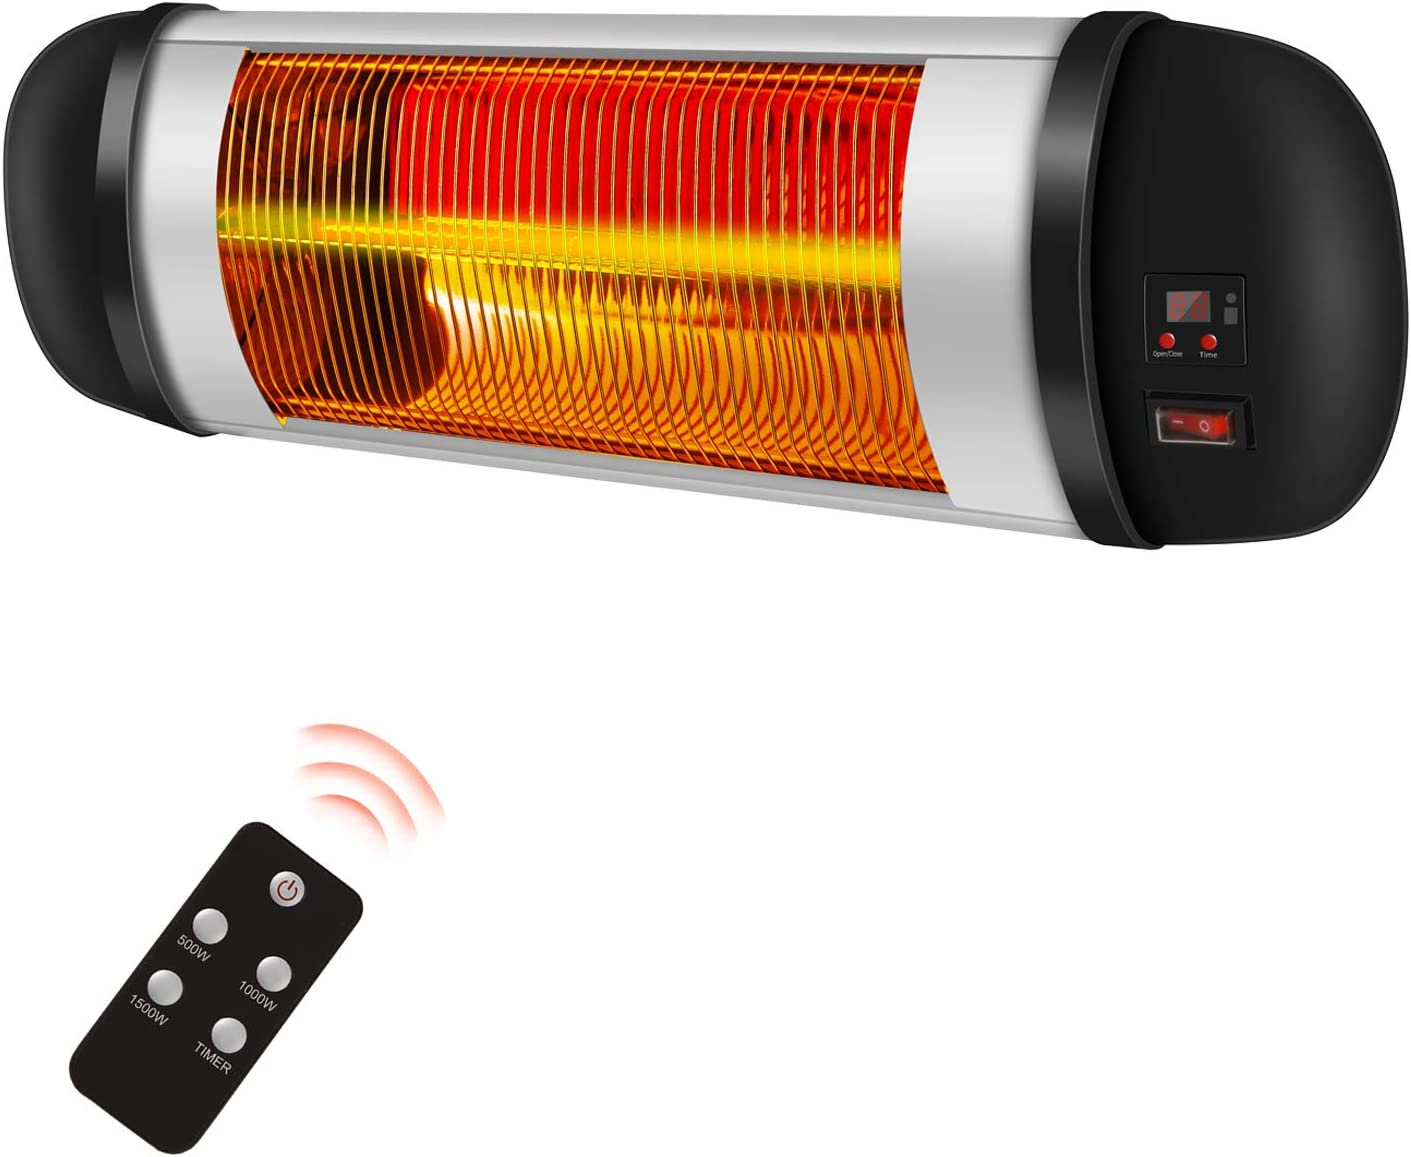 Amazon Com Rmyhome Electric Wall Mounted Patio Heater For Indoor Or Outdoor Use 1500w Electric Infrared Heater With Carbon Fiber Heating Tube Dust Proof Waterproof Overheat Protection System Garden Outdoor